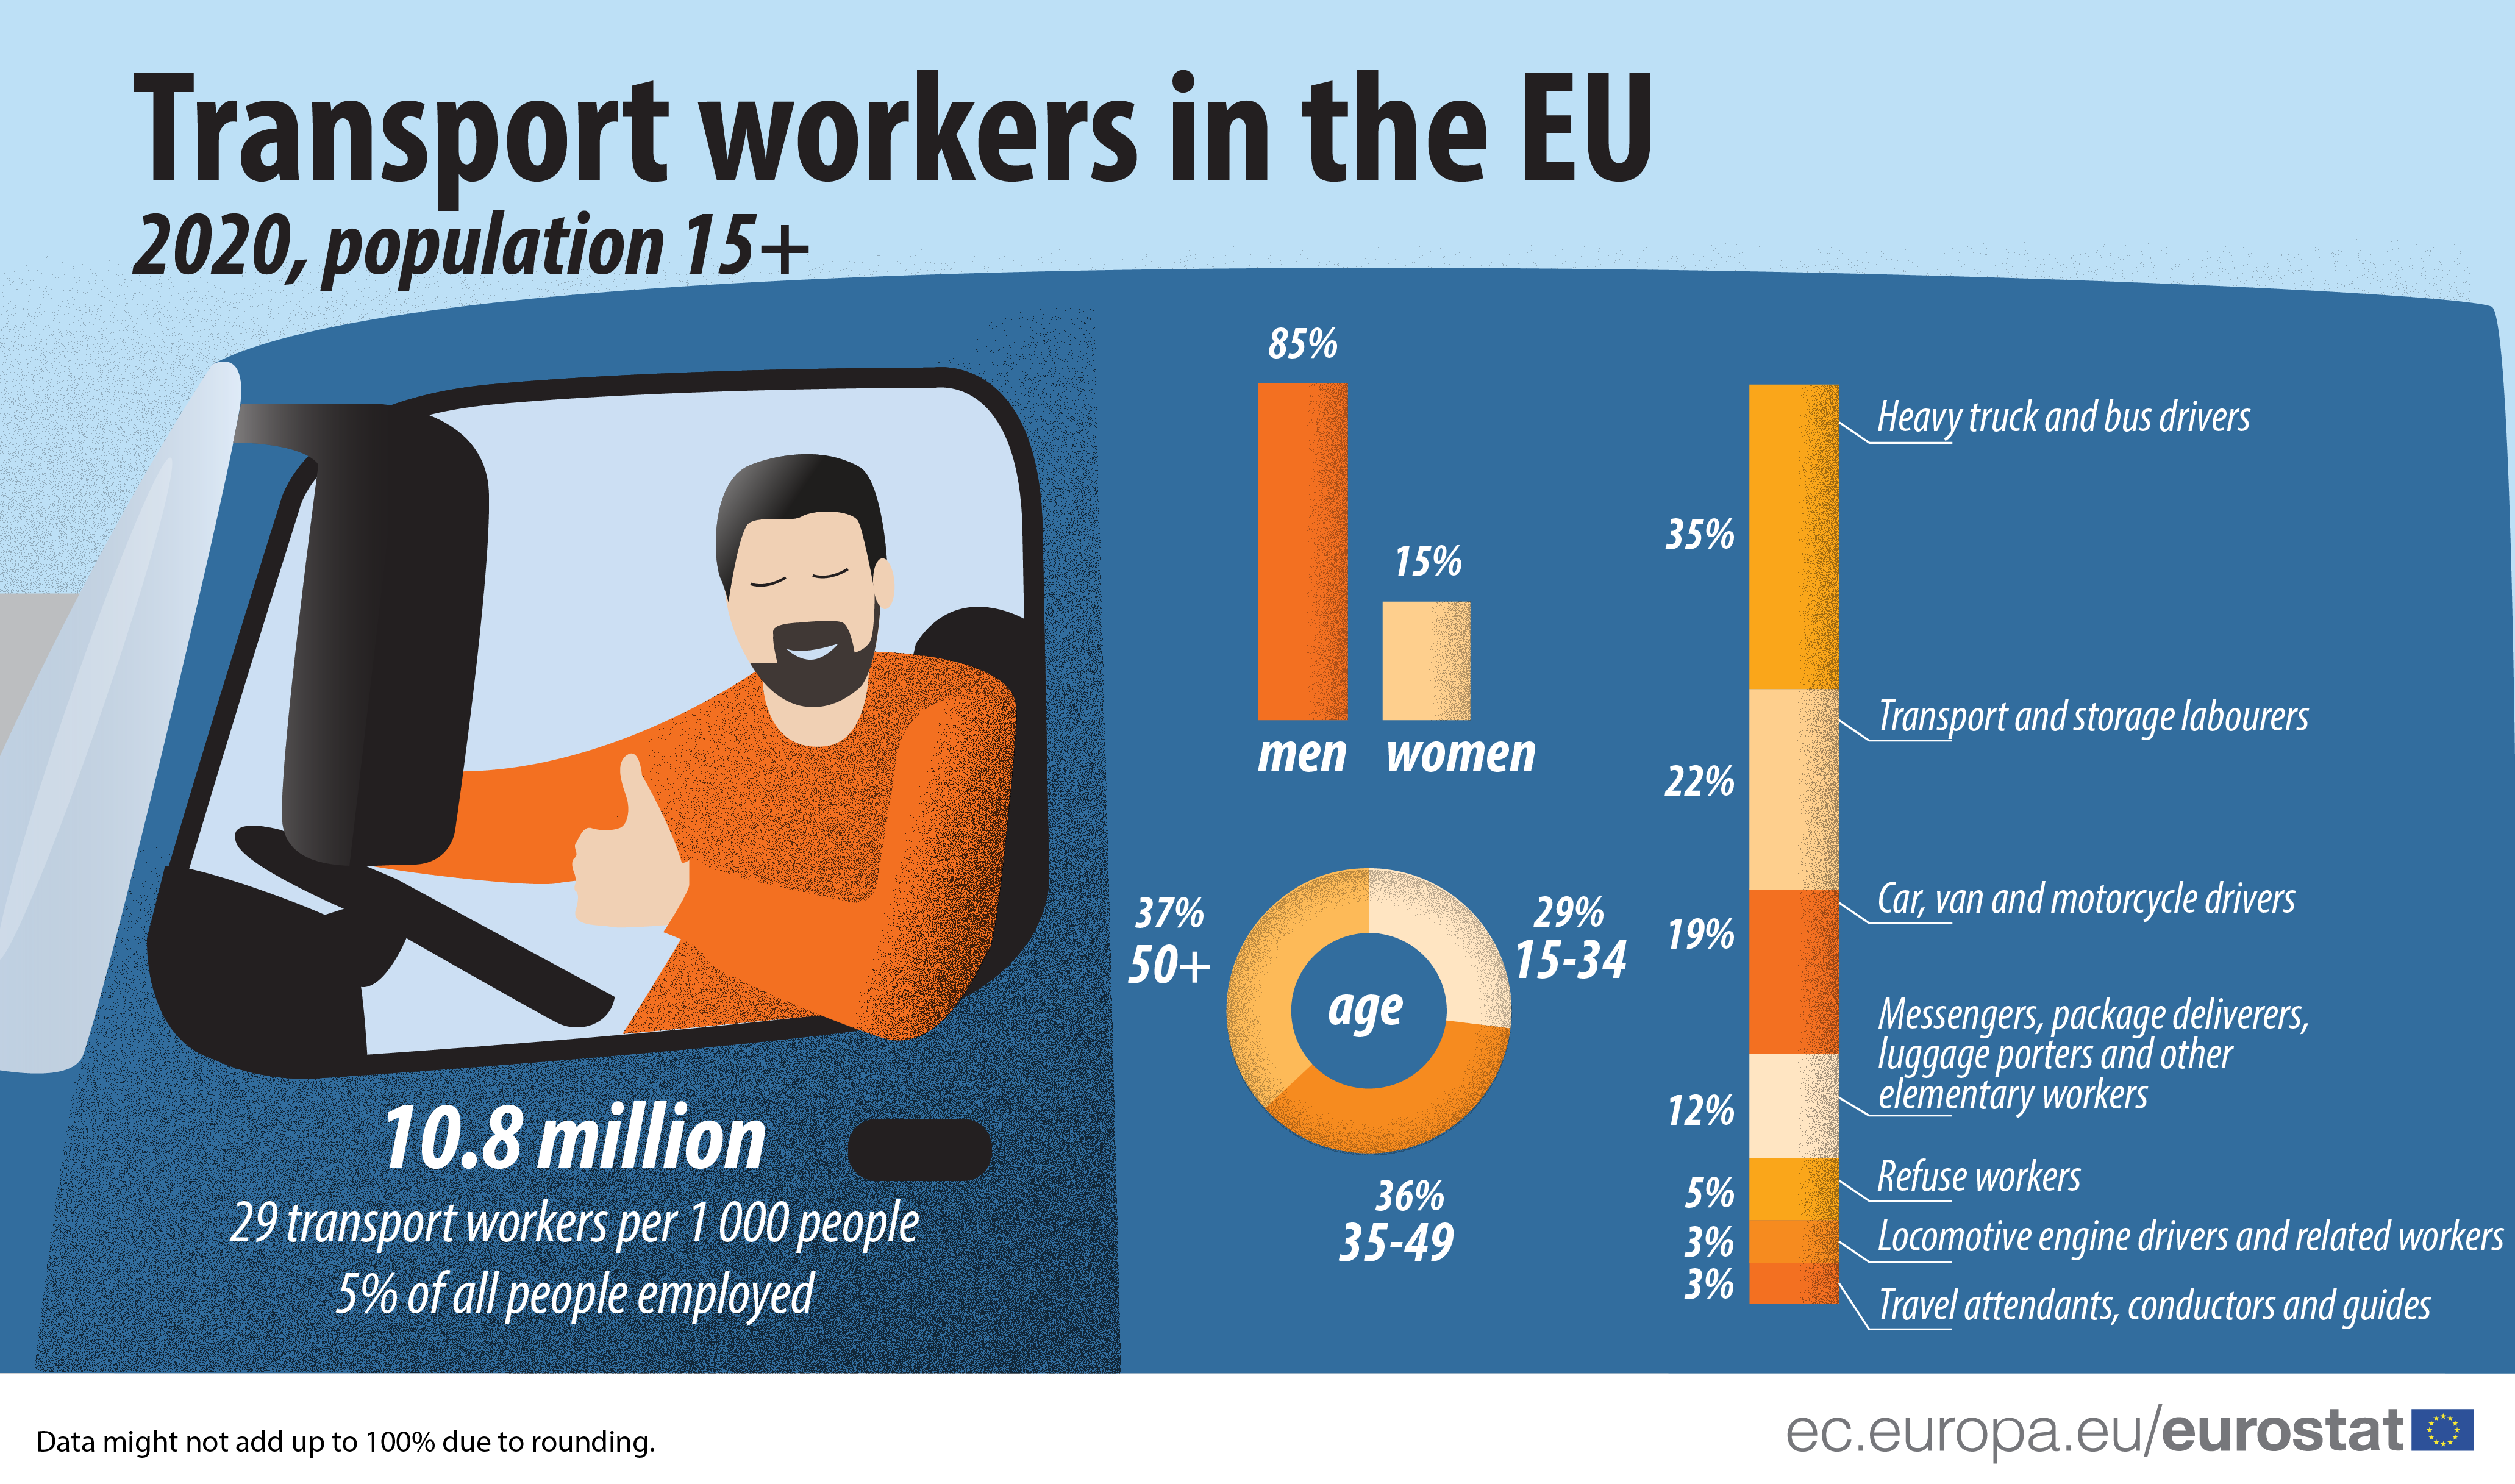 Infographic: Overview of the transport workers in the EU, by age, by sex and by type of transport worker, 2020 data, employed population aged 20-64